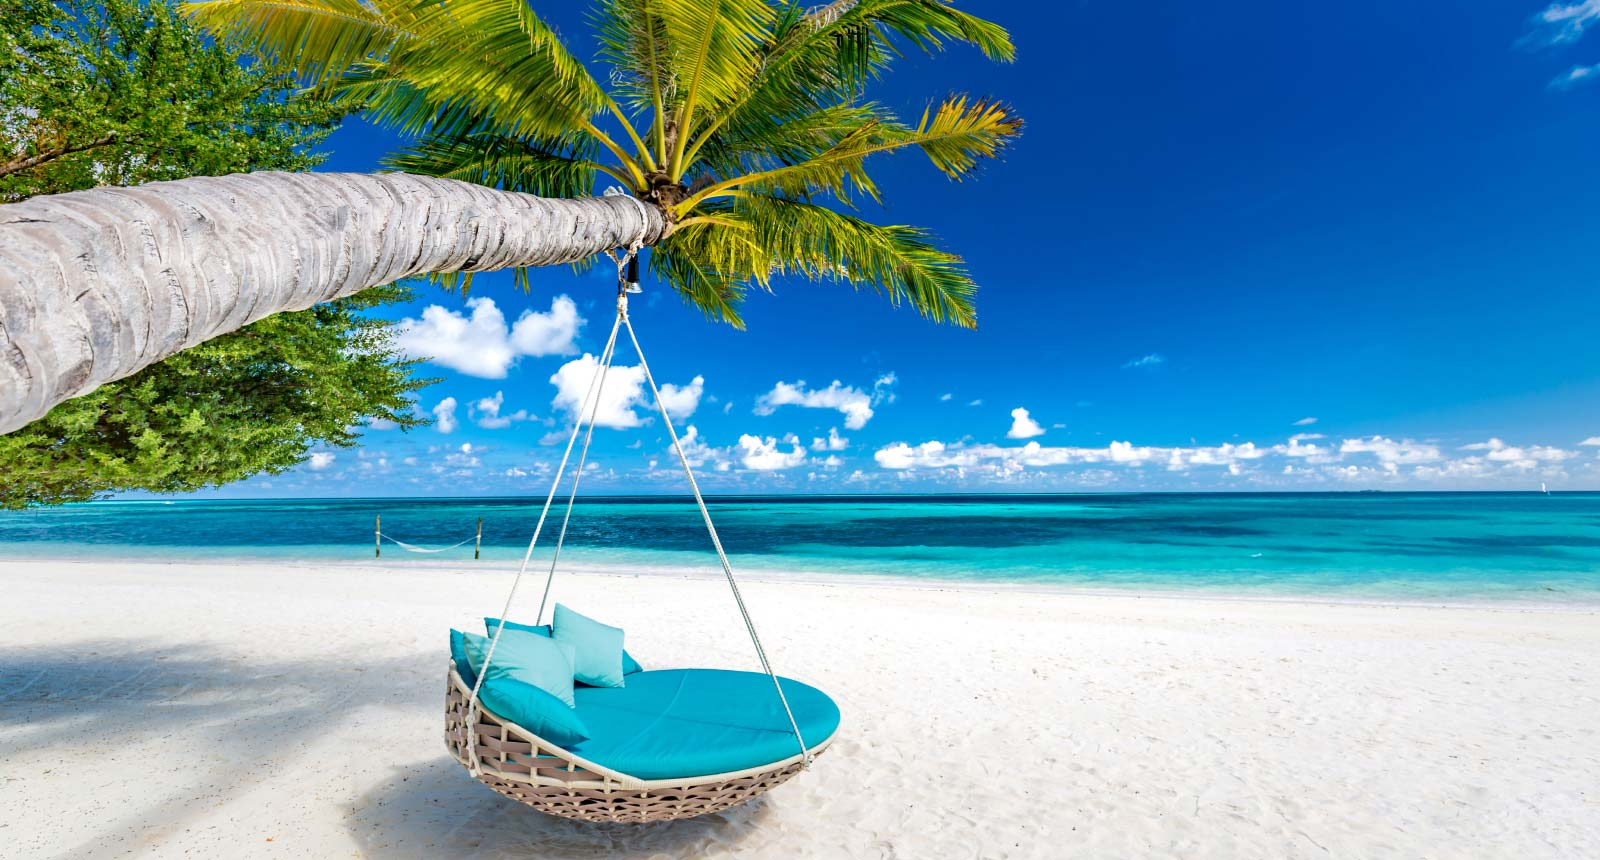 Le Relax Hotels Island Hopping